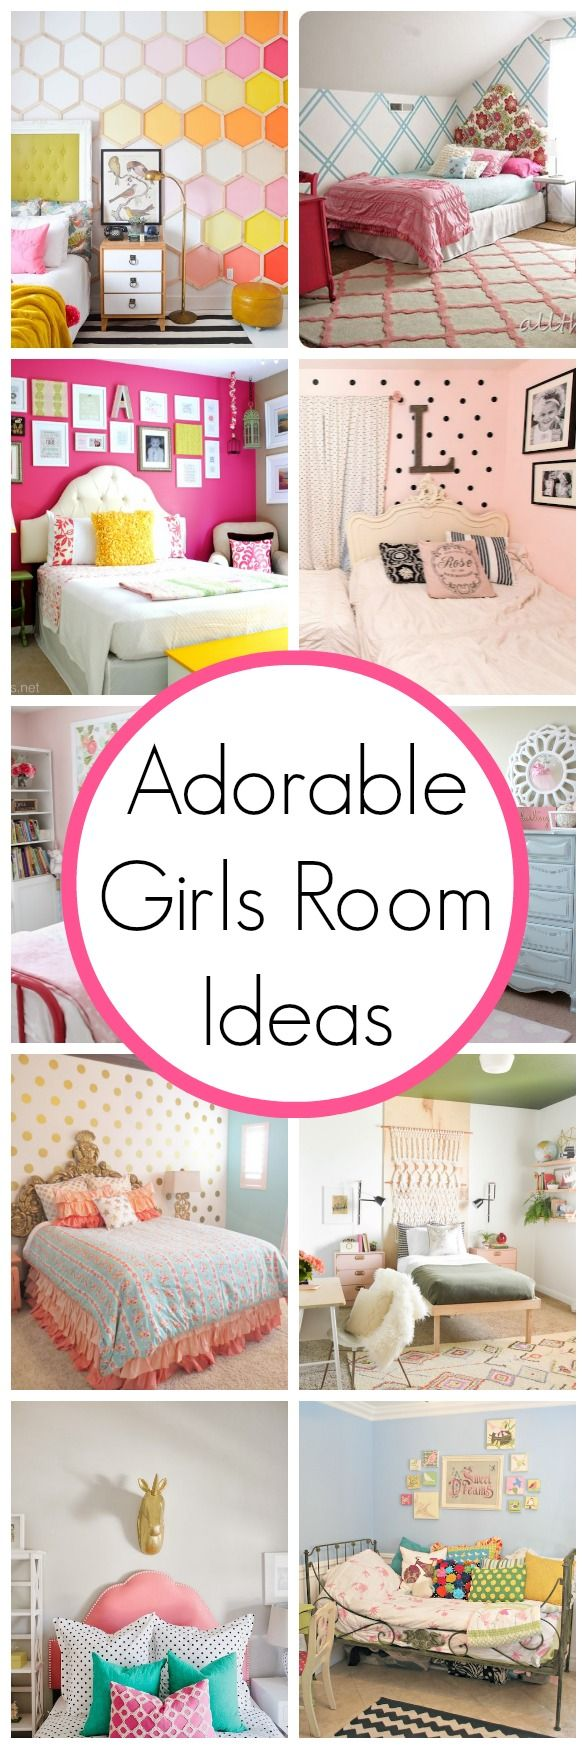 15 Adorable Girls Room ideas to leave you inspired! | www.classyclutter.net